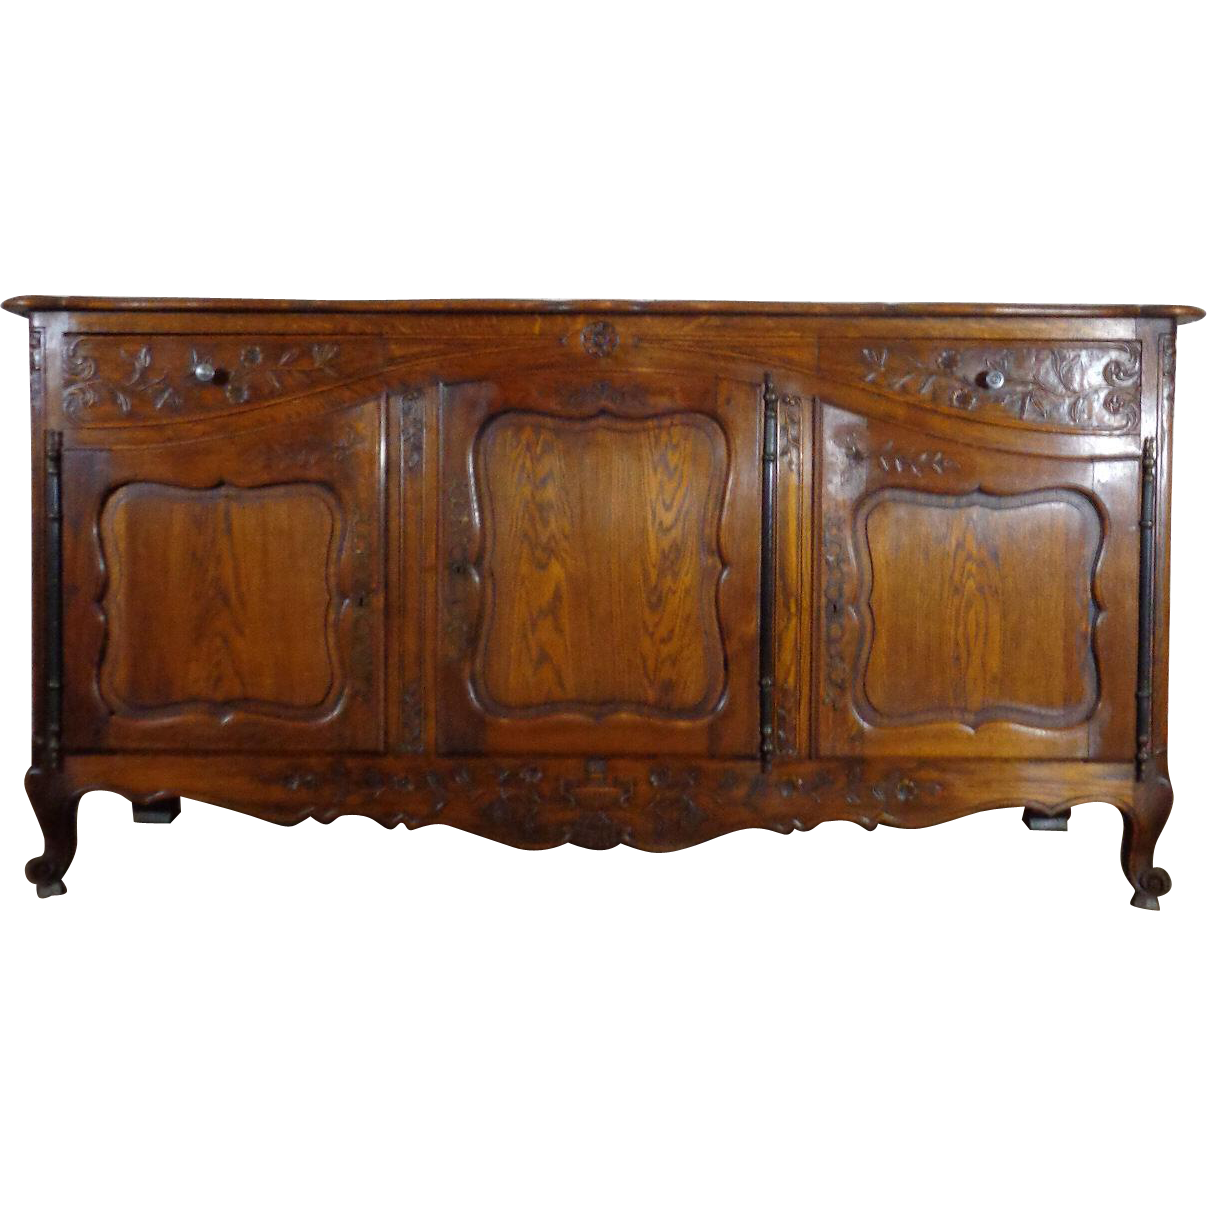 19th century antique french louis xv style oak buffet enfilade sold on ruby lane. Black Bedroom Furniture Sets. Home Design Ideas